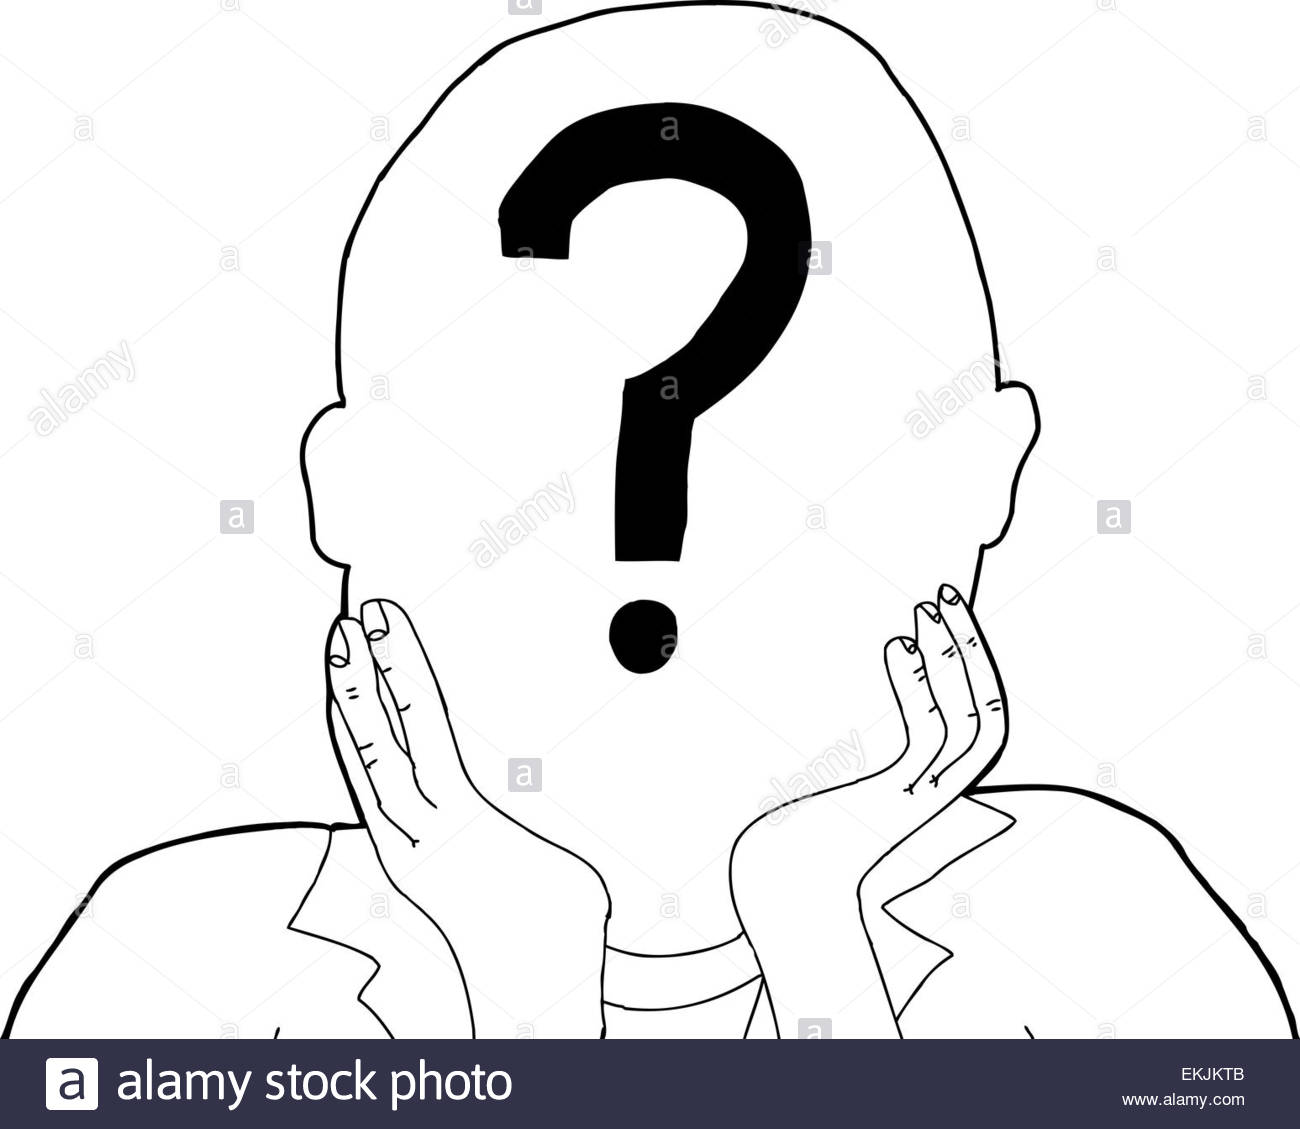 1300x1129 Outline Of Anonymous Person With Question Mark Stock Photo